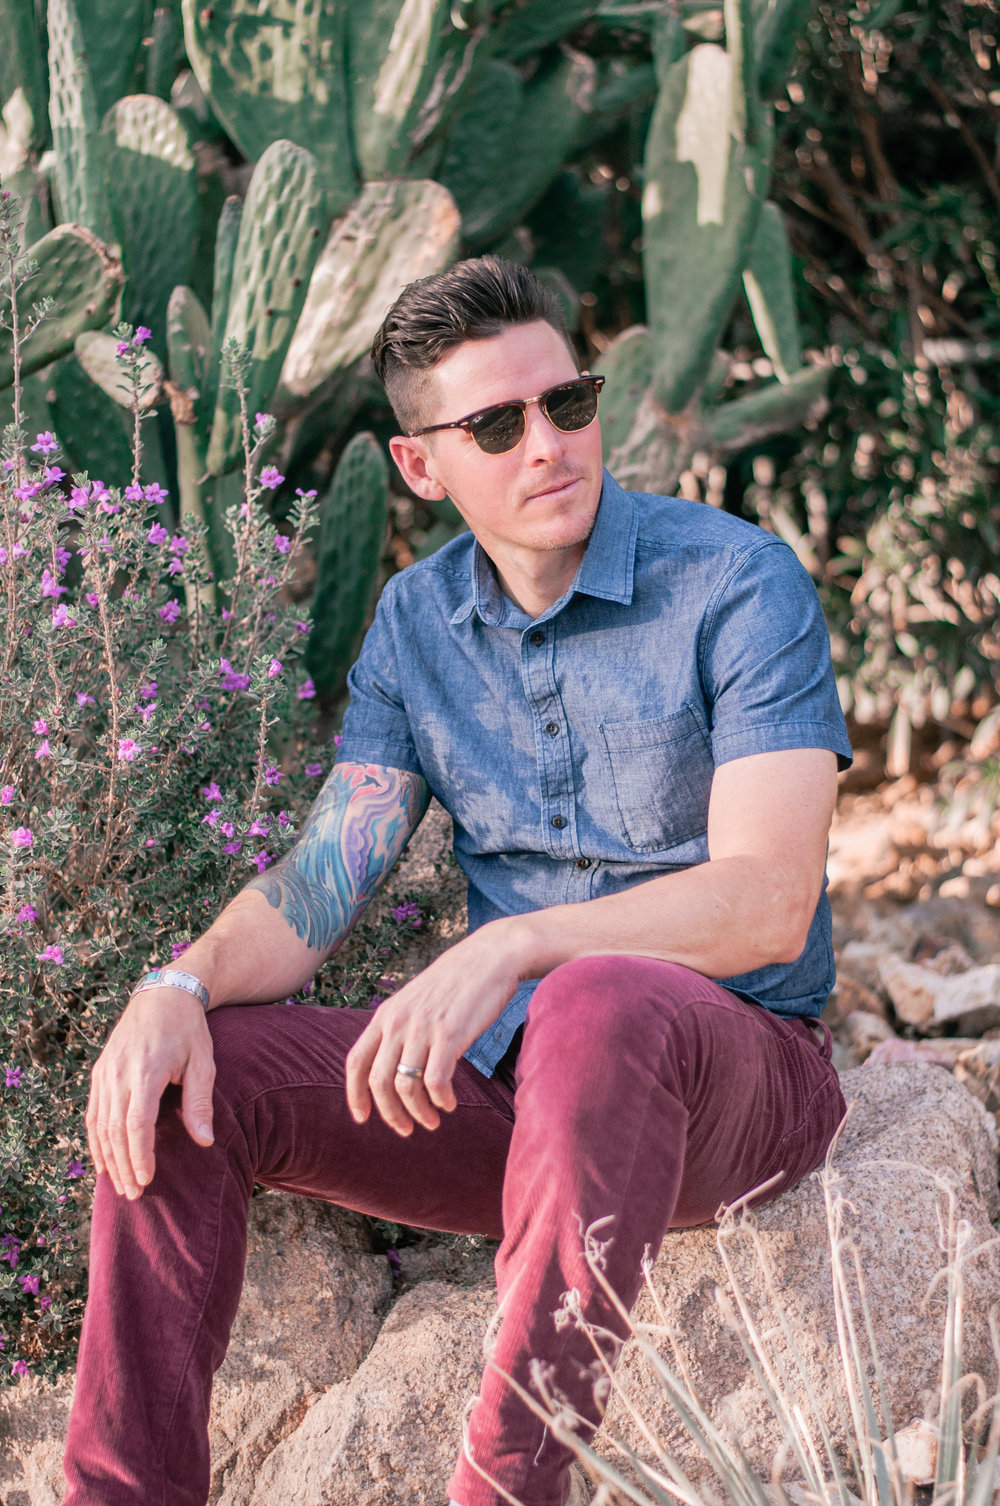 Men's Casual Summer Outfit With Short Sleeve Chambray Shirt